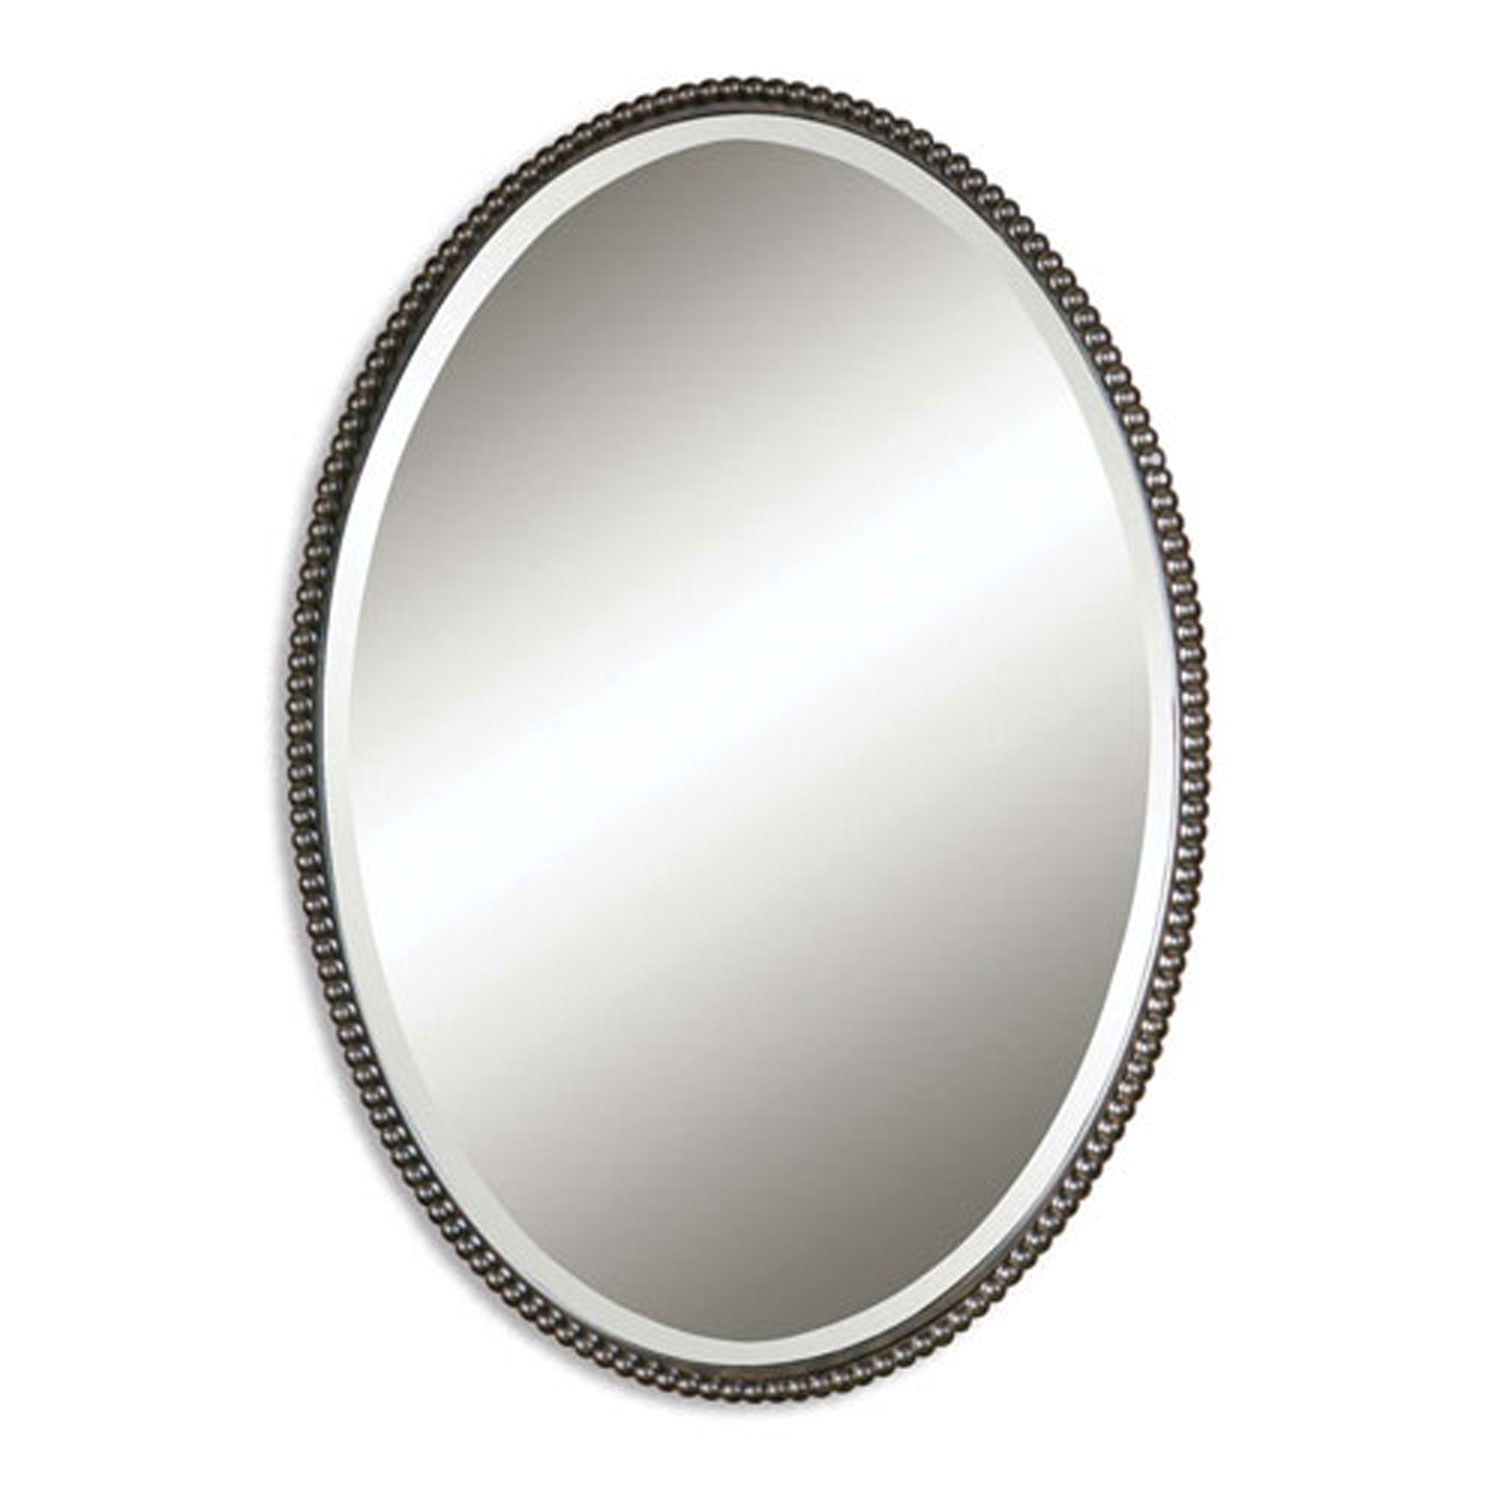 Oval Wall Mirrors 270 Kitchen Bathroom Frameless Vanity Options Pertaining To White Oval Wall Mirror (Image 8 of 15)